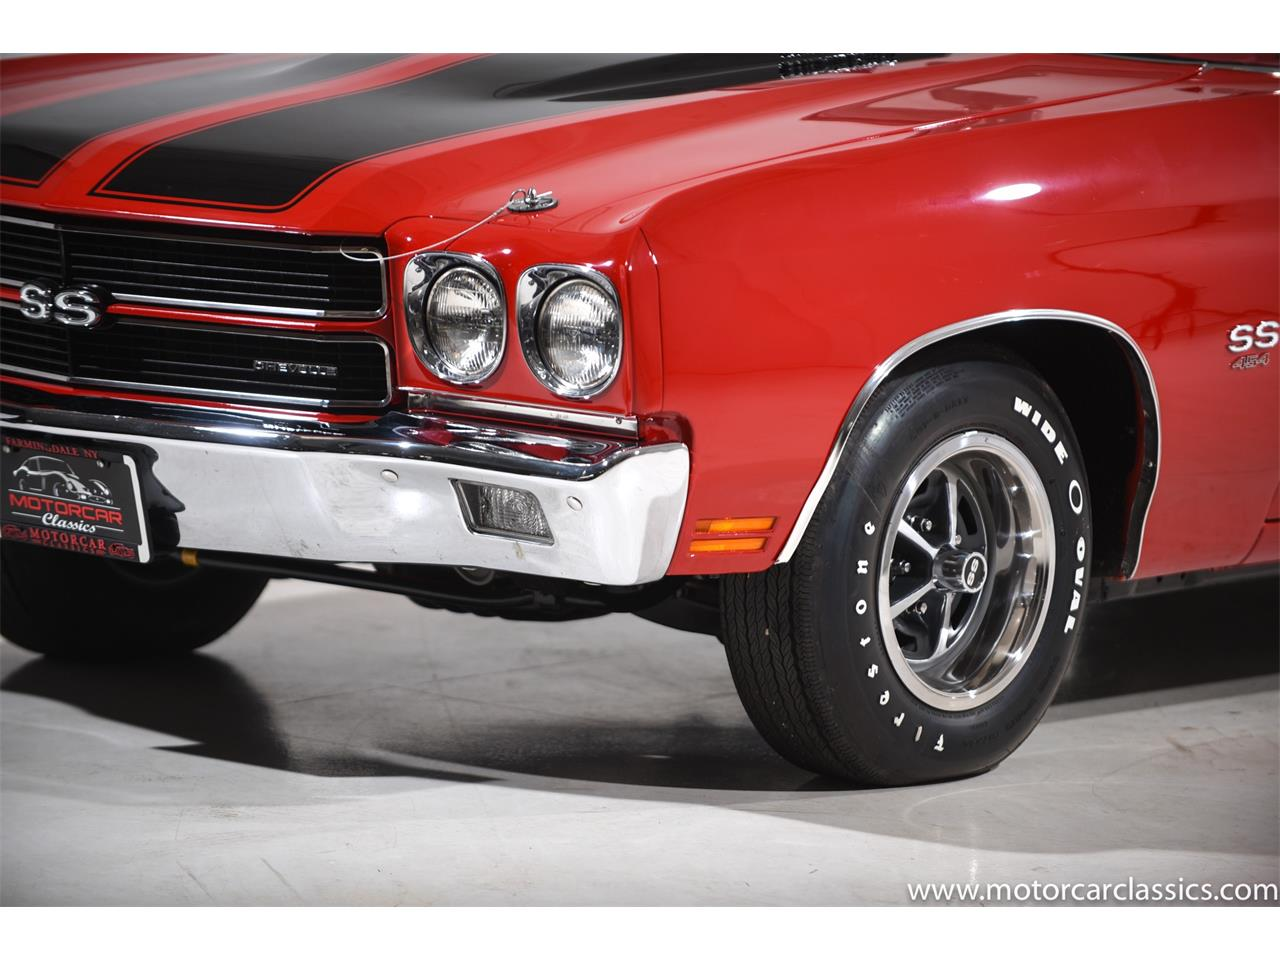 1970 Chevrolet Chevelle for sale in Farmingdale, NY – photo 20